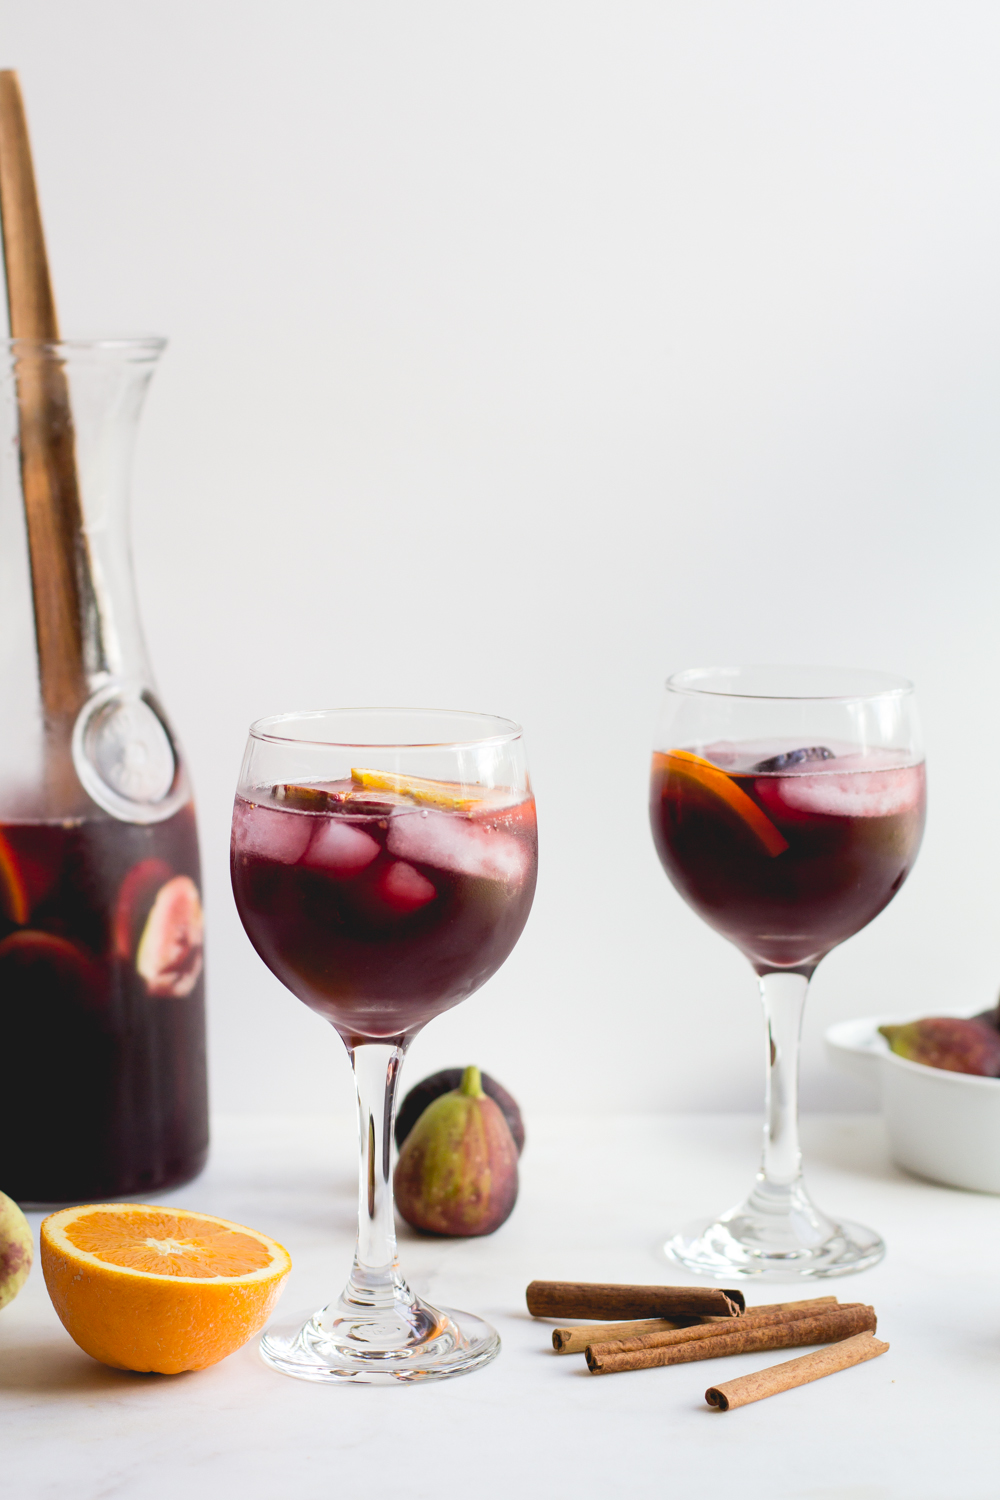 Sangria with Oranges, Figs + Cinnamon